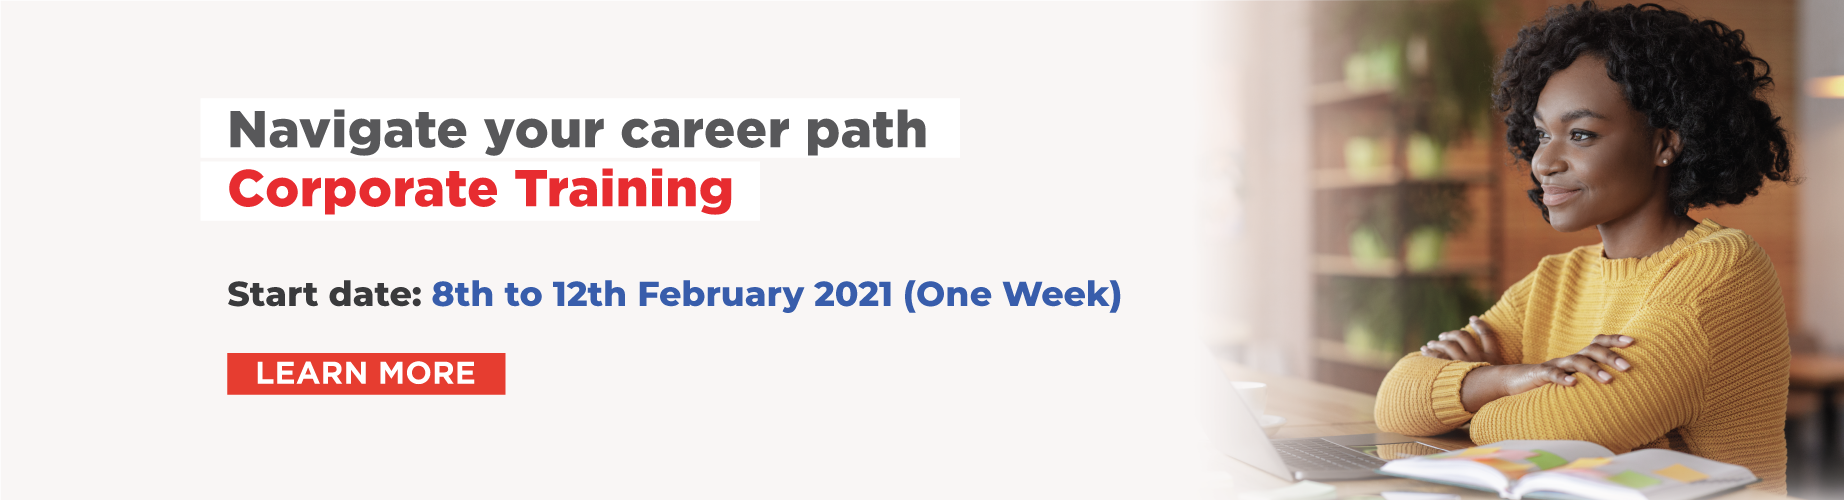 Navigate-Your-Career-Path-Corporate-Training